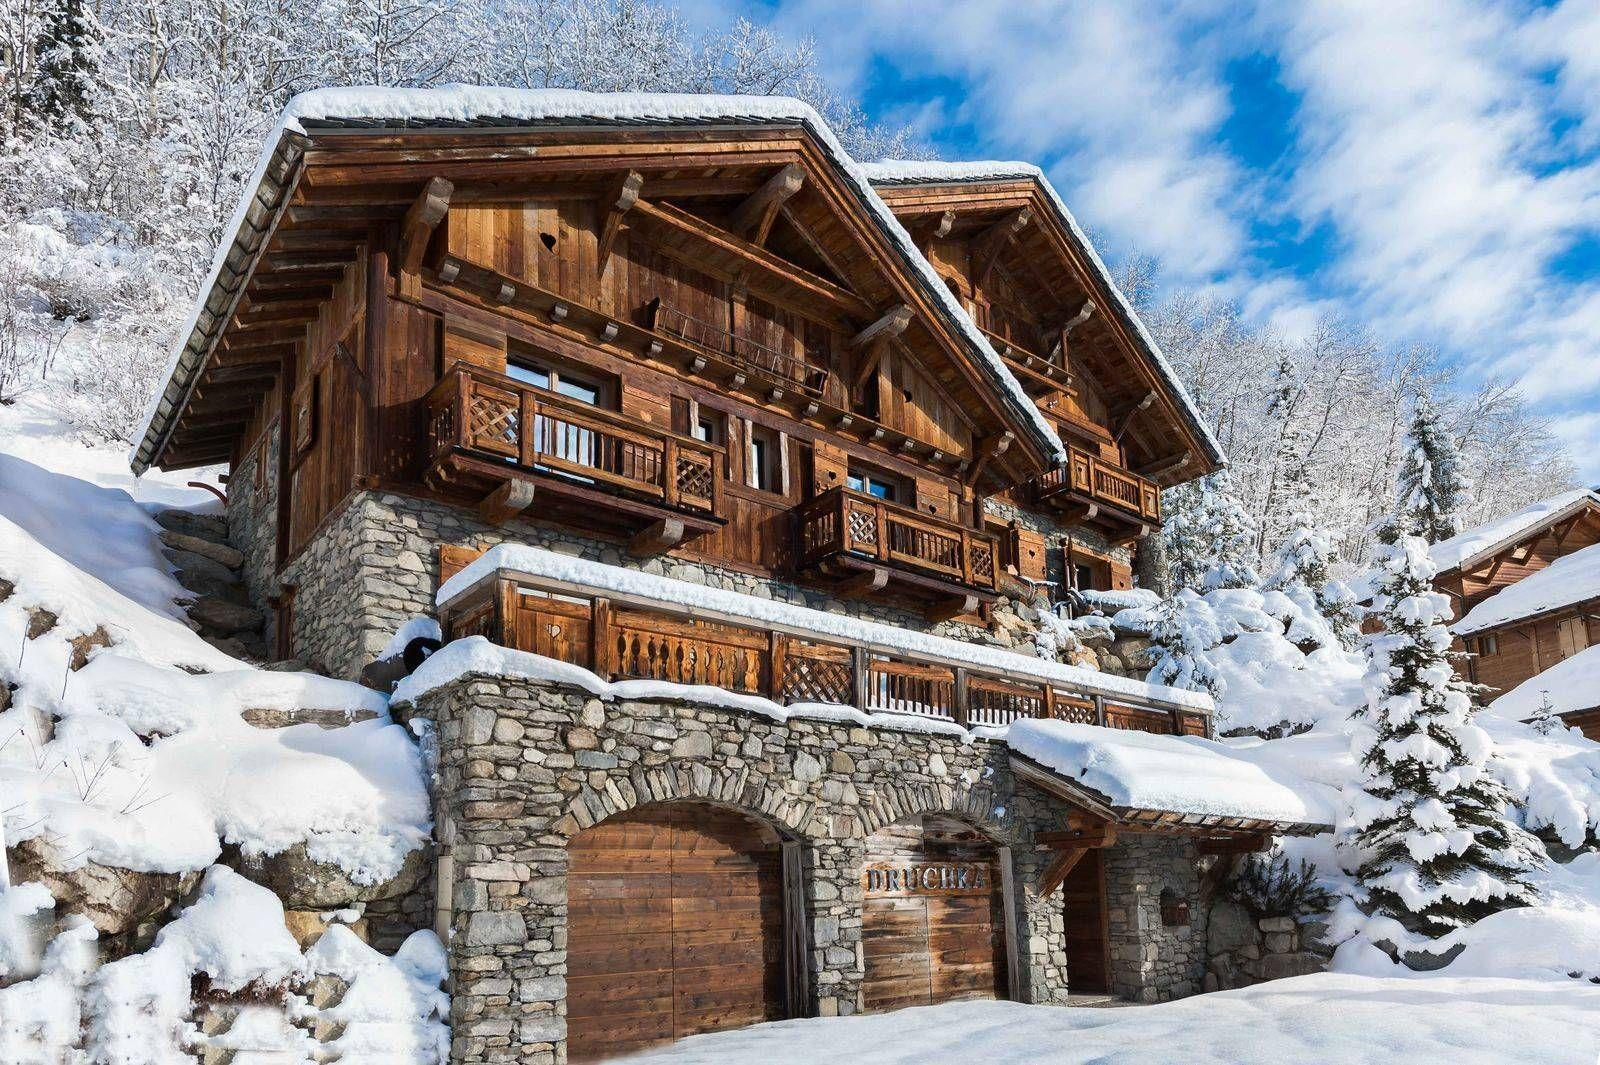 Chalet Le Lapin Blanc Meribel chalet druchka | luxury chalet in meribel